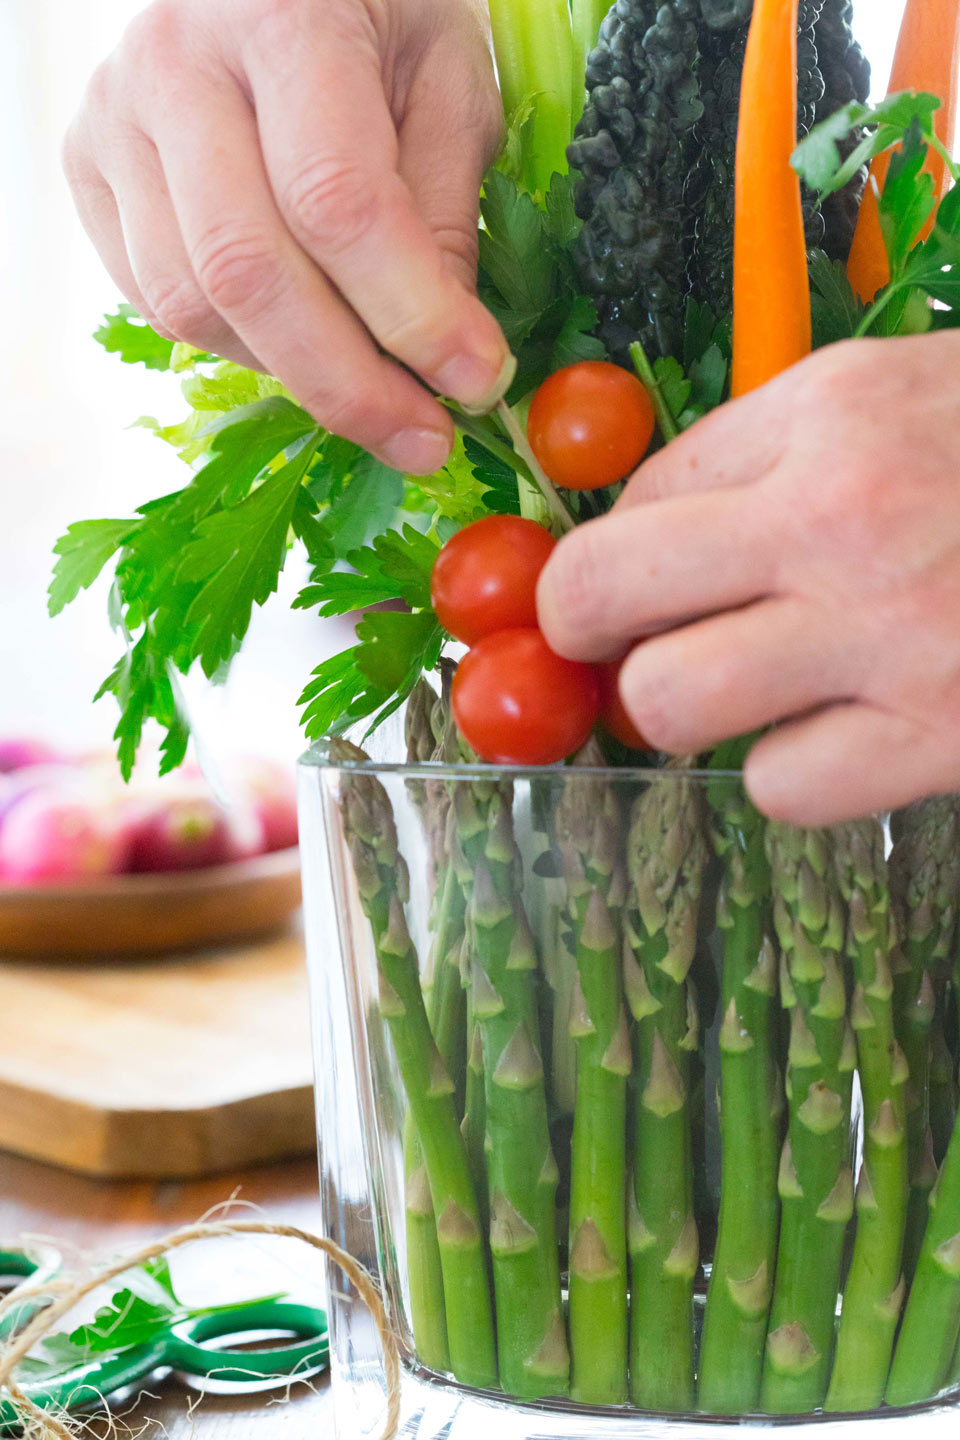 Decorate the arrangement by skewering cherry tomatoes with a bamboo pick pressing into the kale and parsley